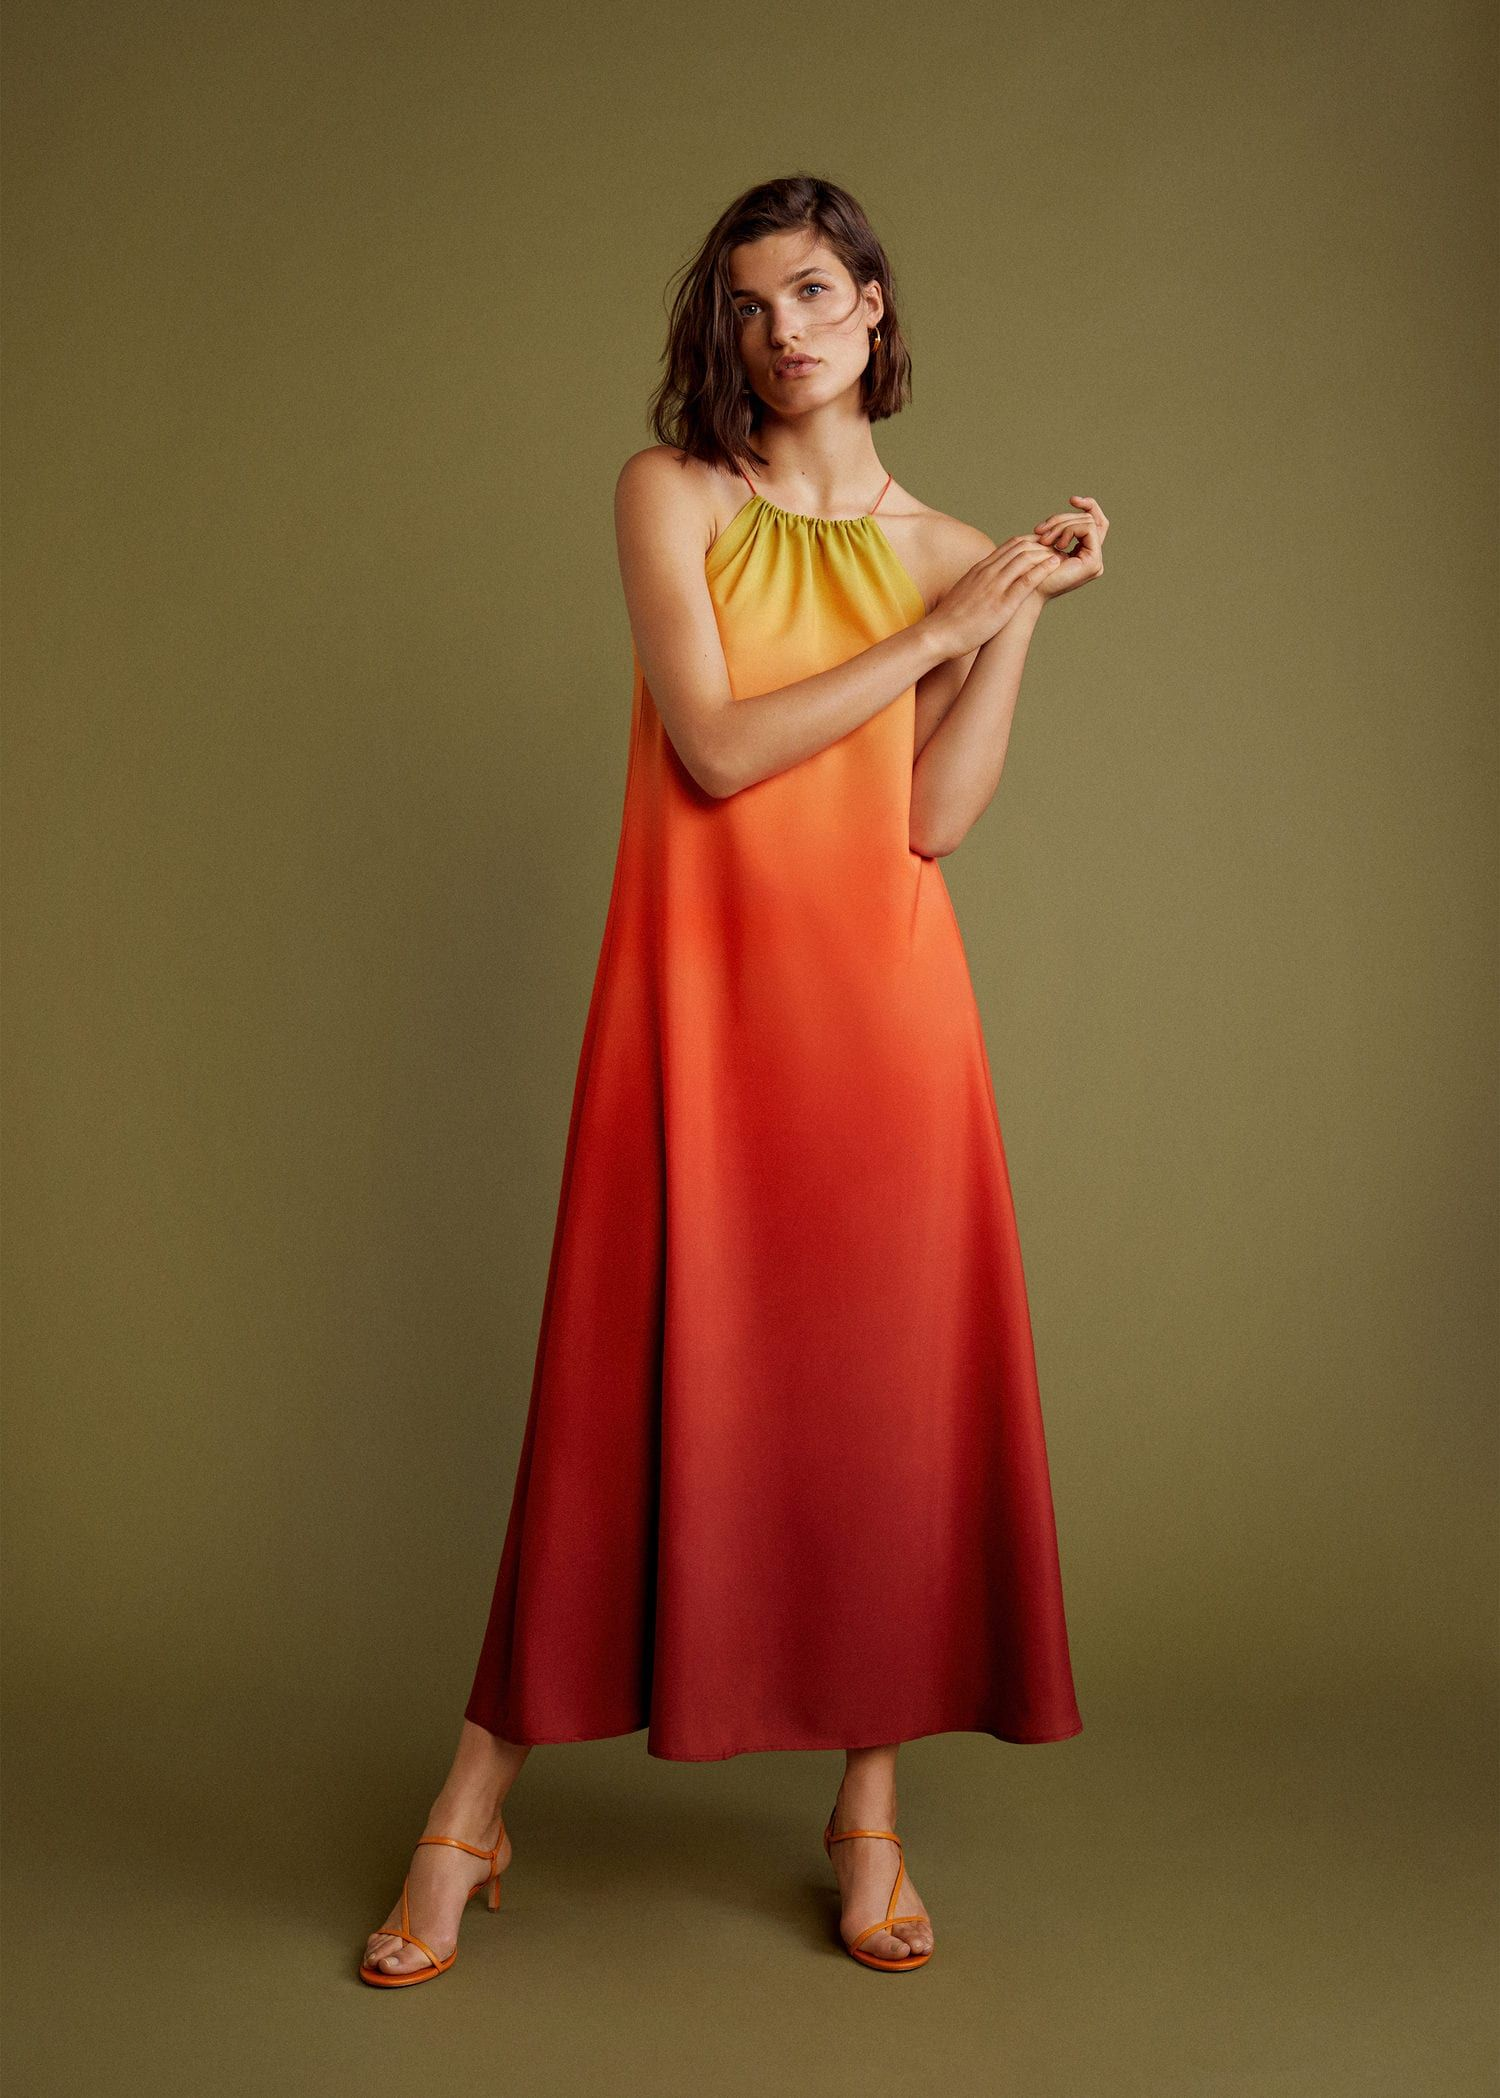 This sell-out Mango dress is available to buy again